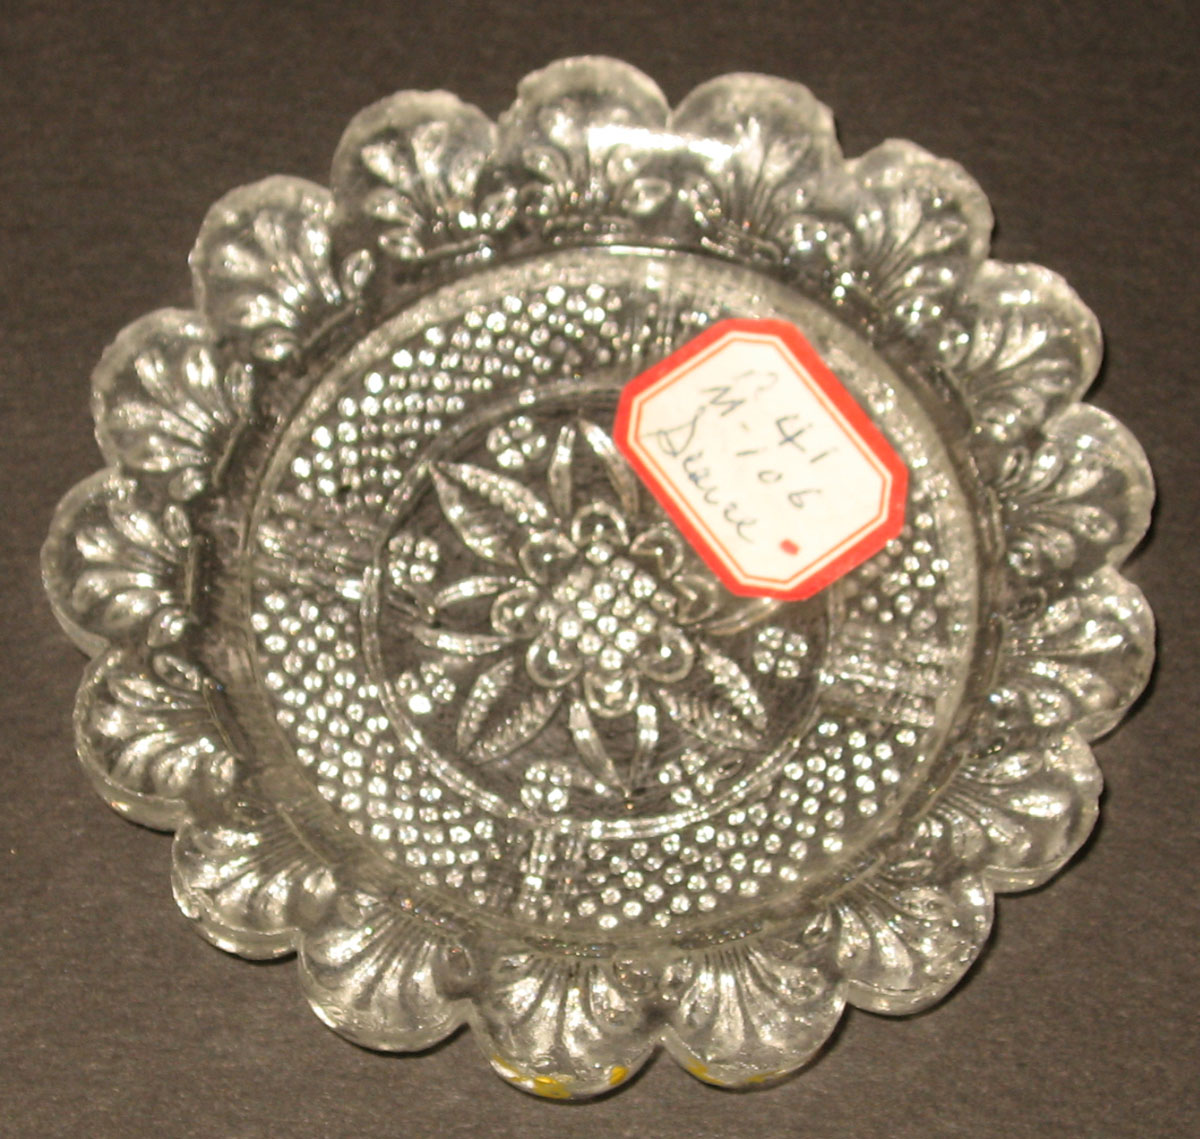 1978.0125.006 Glass cup plate